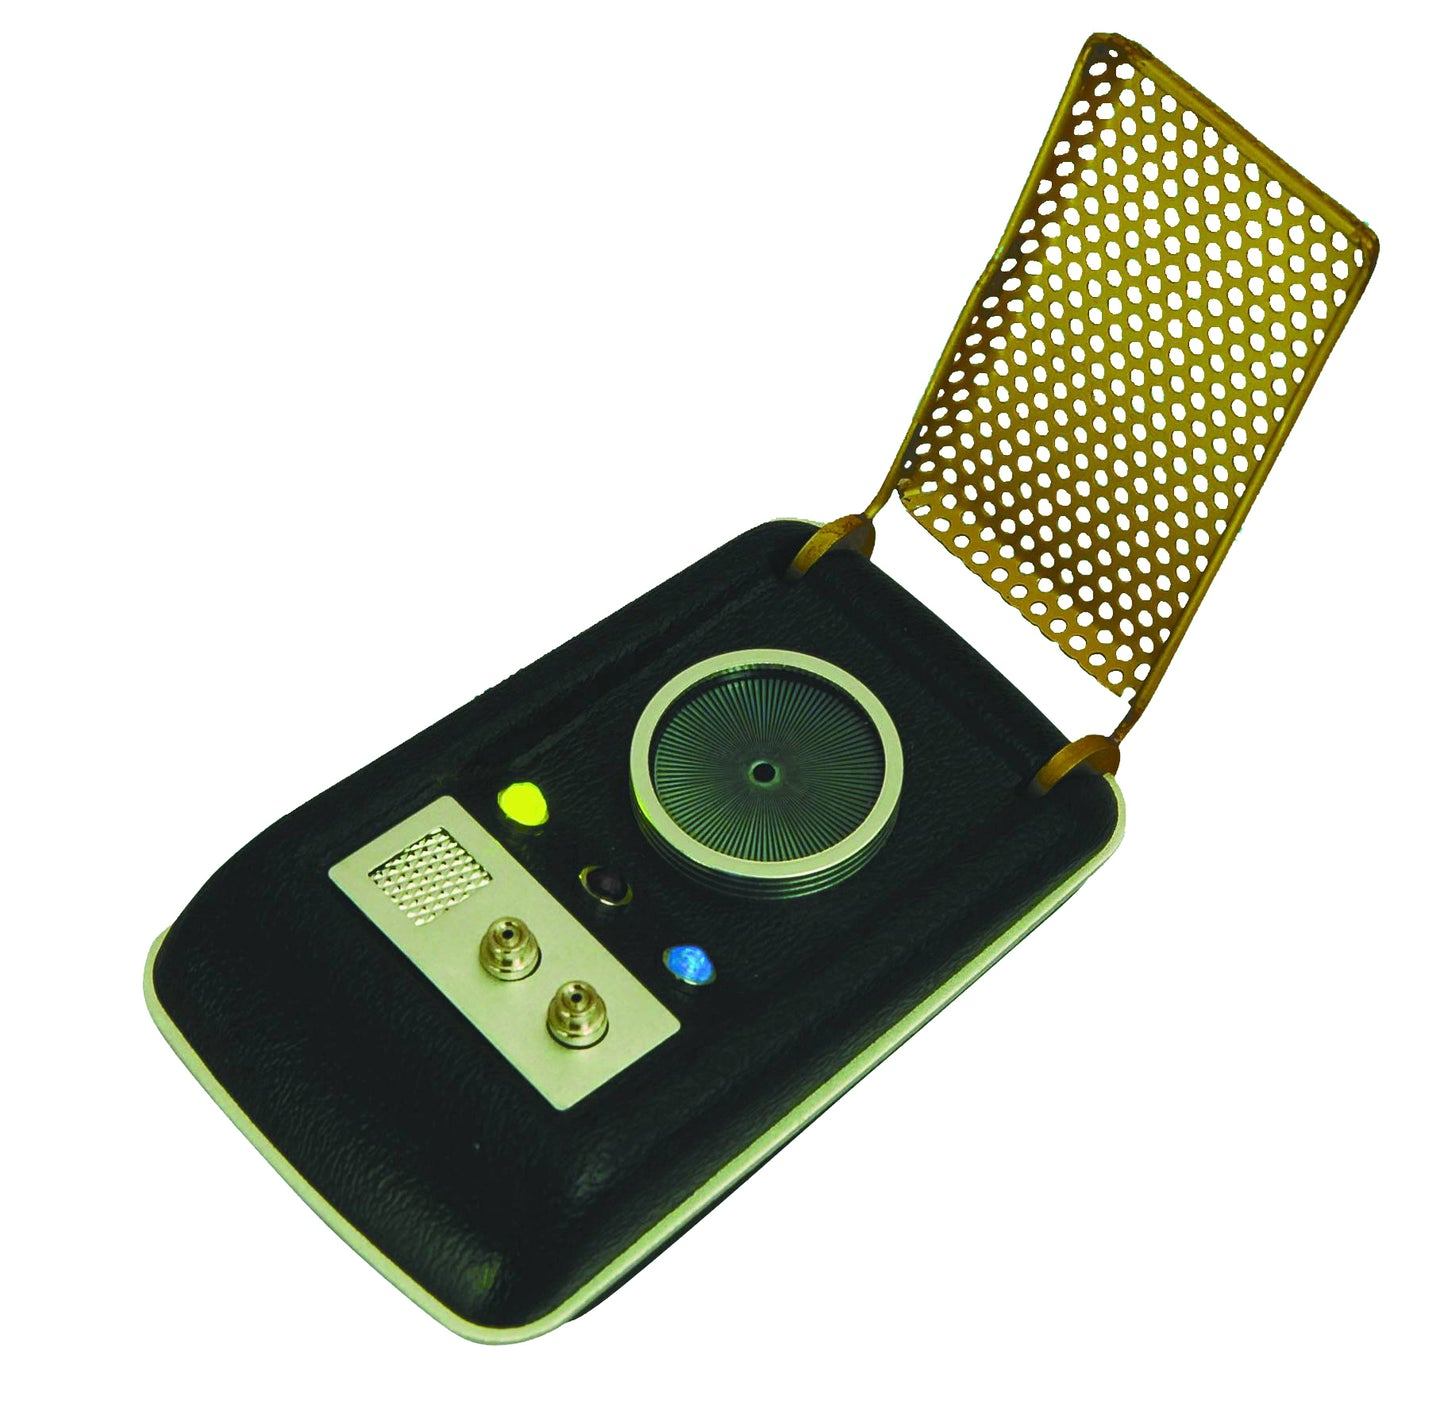 ST The Original Series Communicator With Sounds and Light